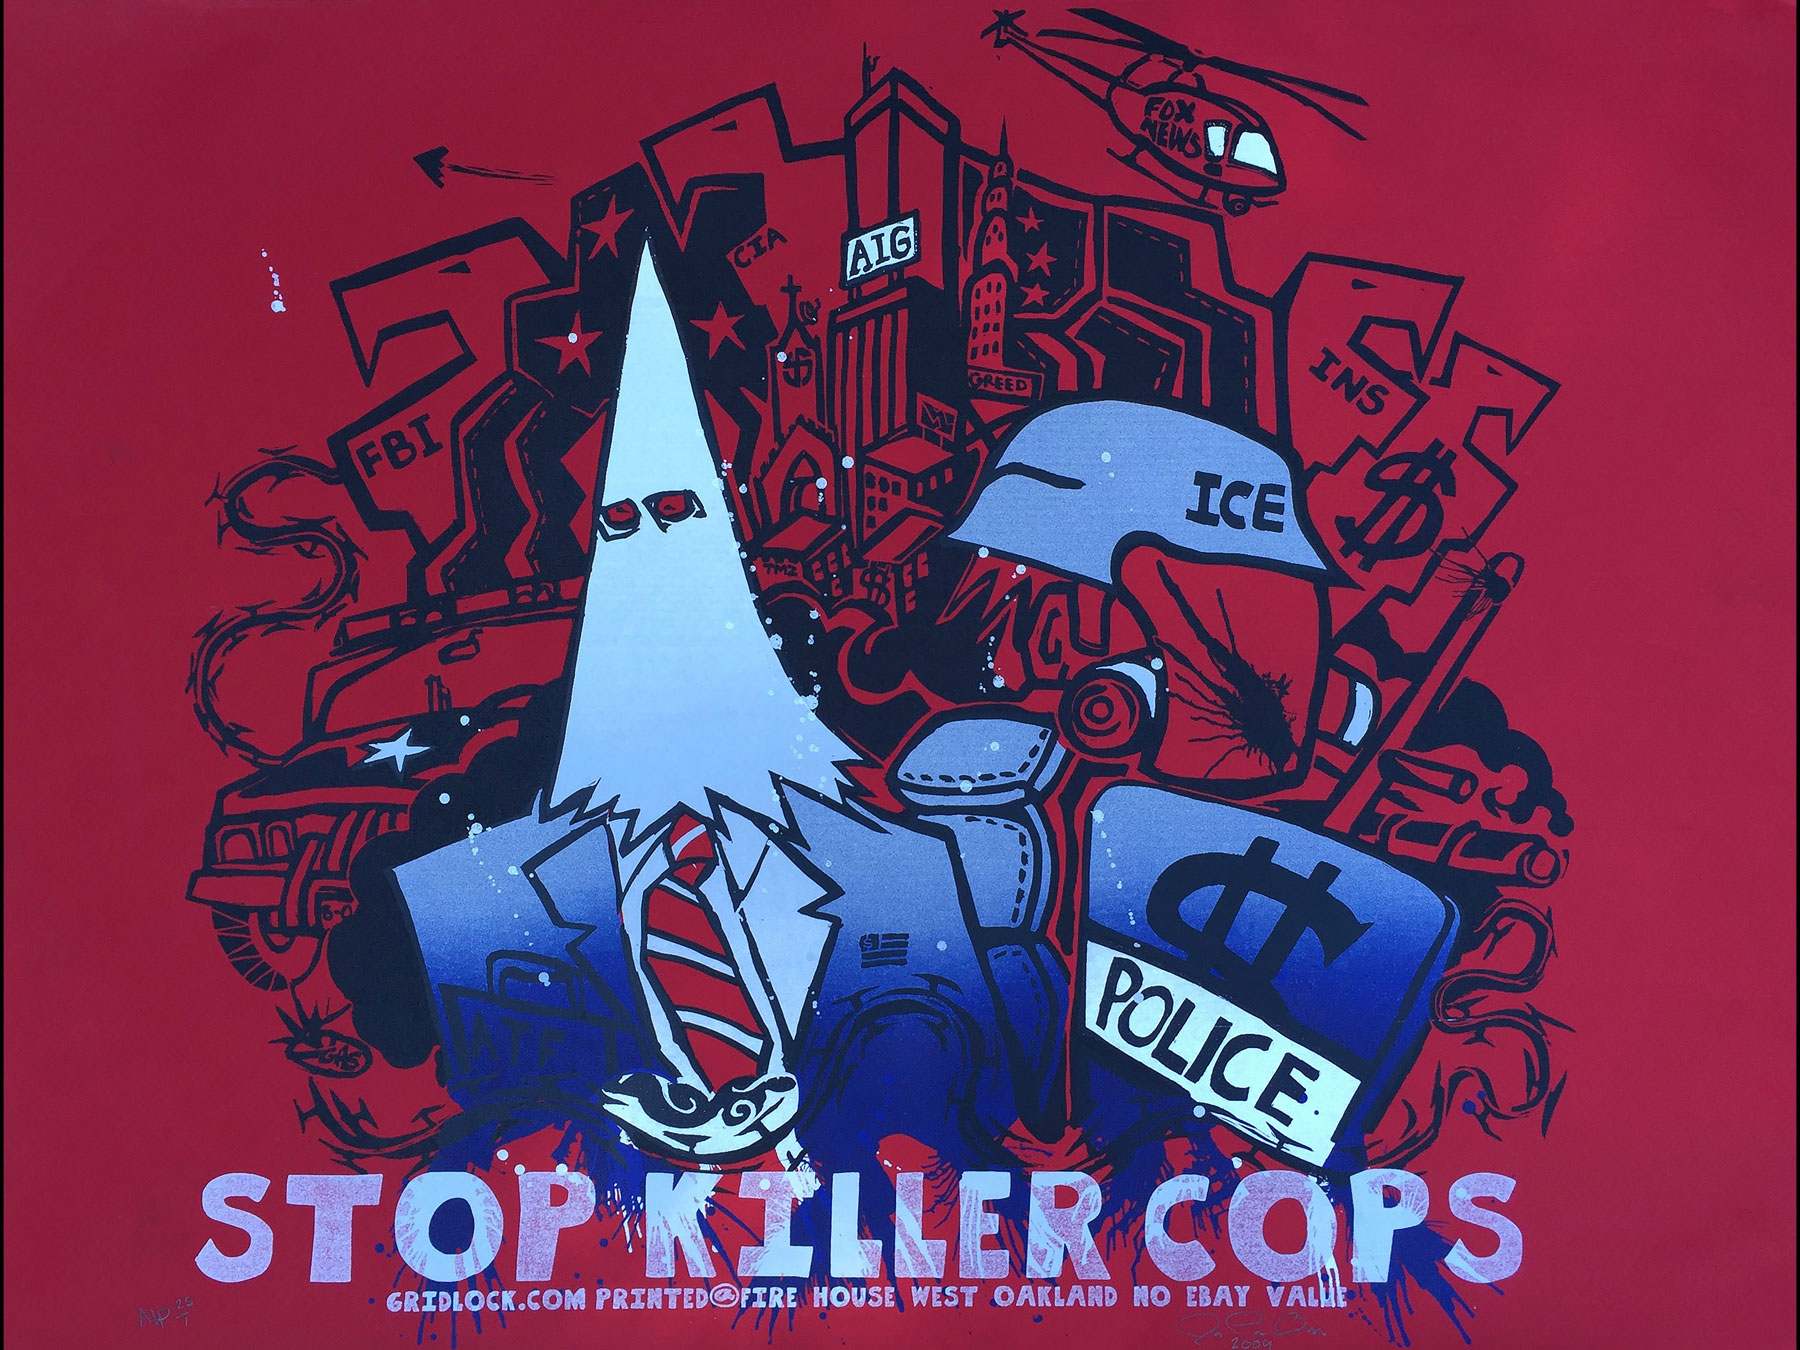 'Stop Killer Cops' by Political Gridlock.